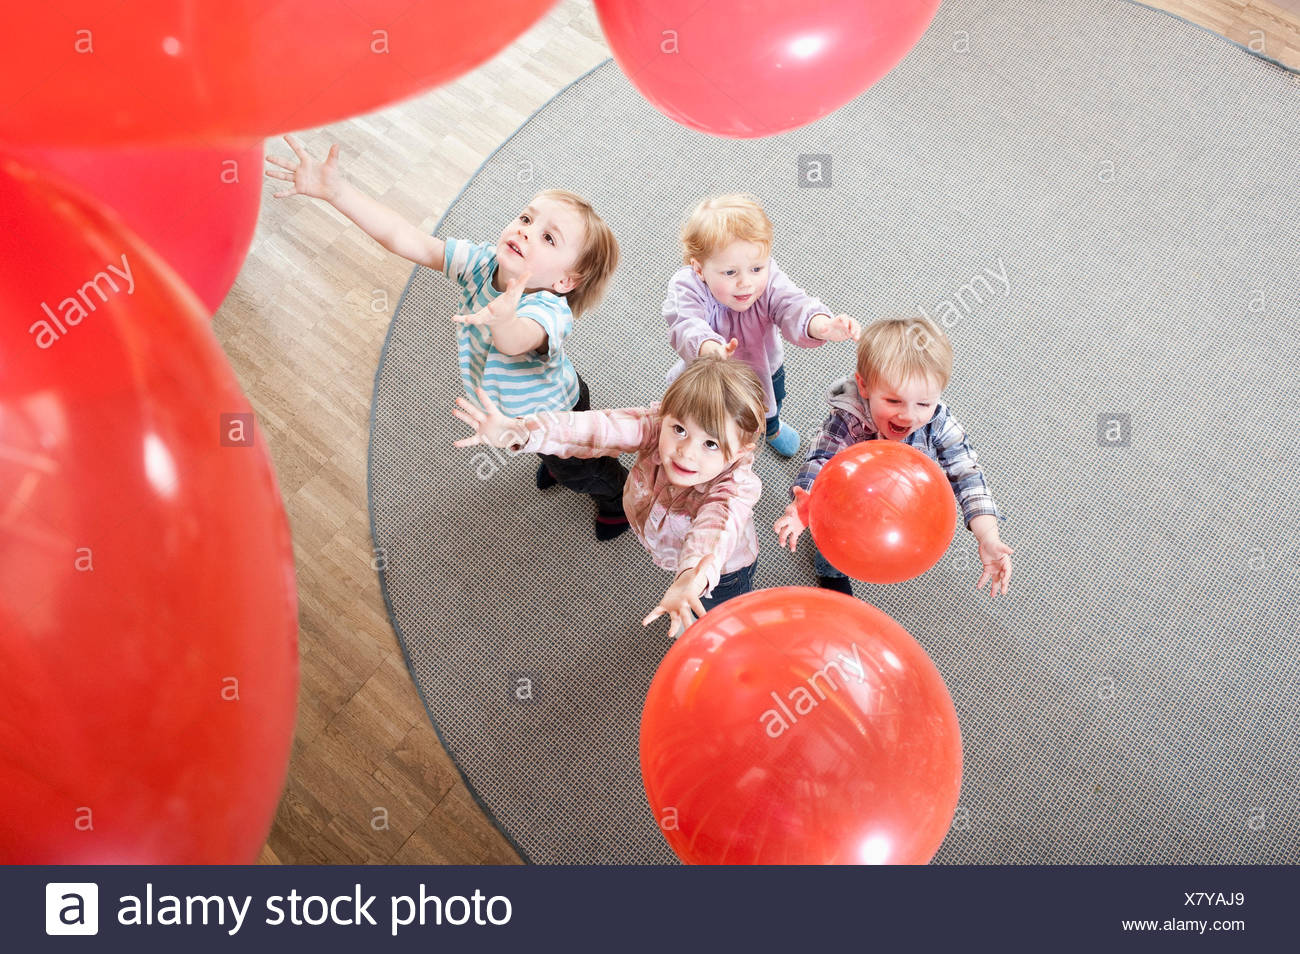 Four kids playing with red balloons in kindergarten, elevated view - Stock Image